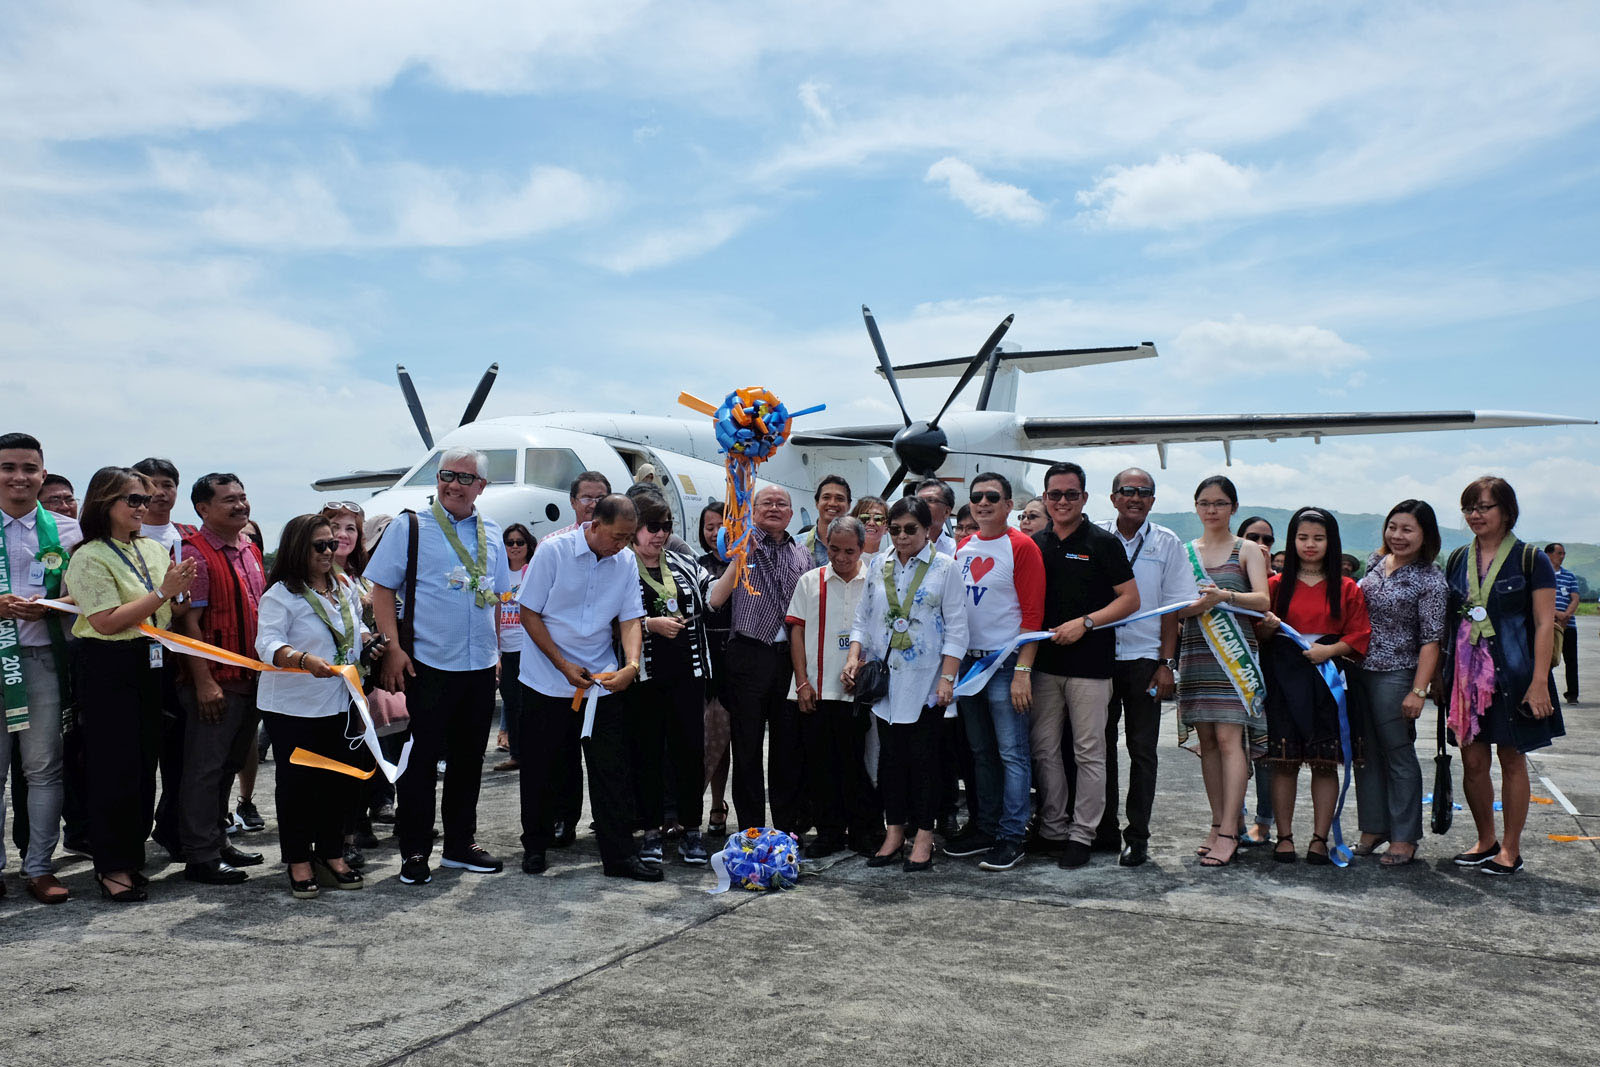 Ribbon cutting ceremony on the tarmac of Bagabag Airport led by DOT officials u0026 the provincial government of Nueva Vizcaya. Photo by Potpot Pinili/Rappler